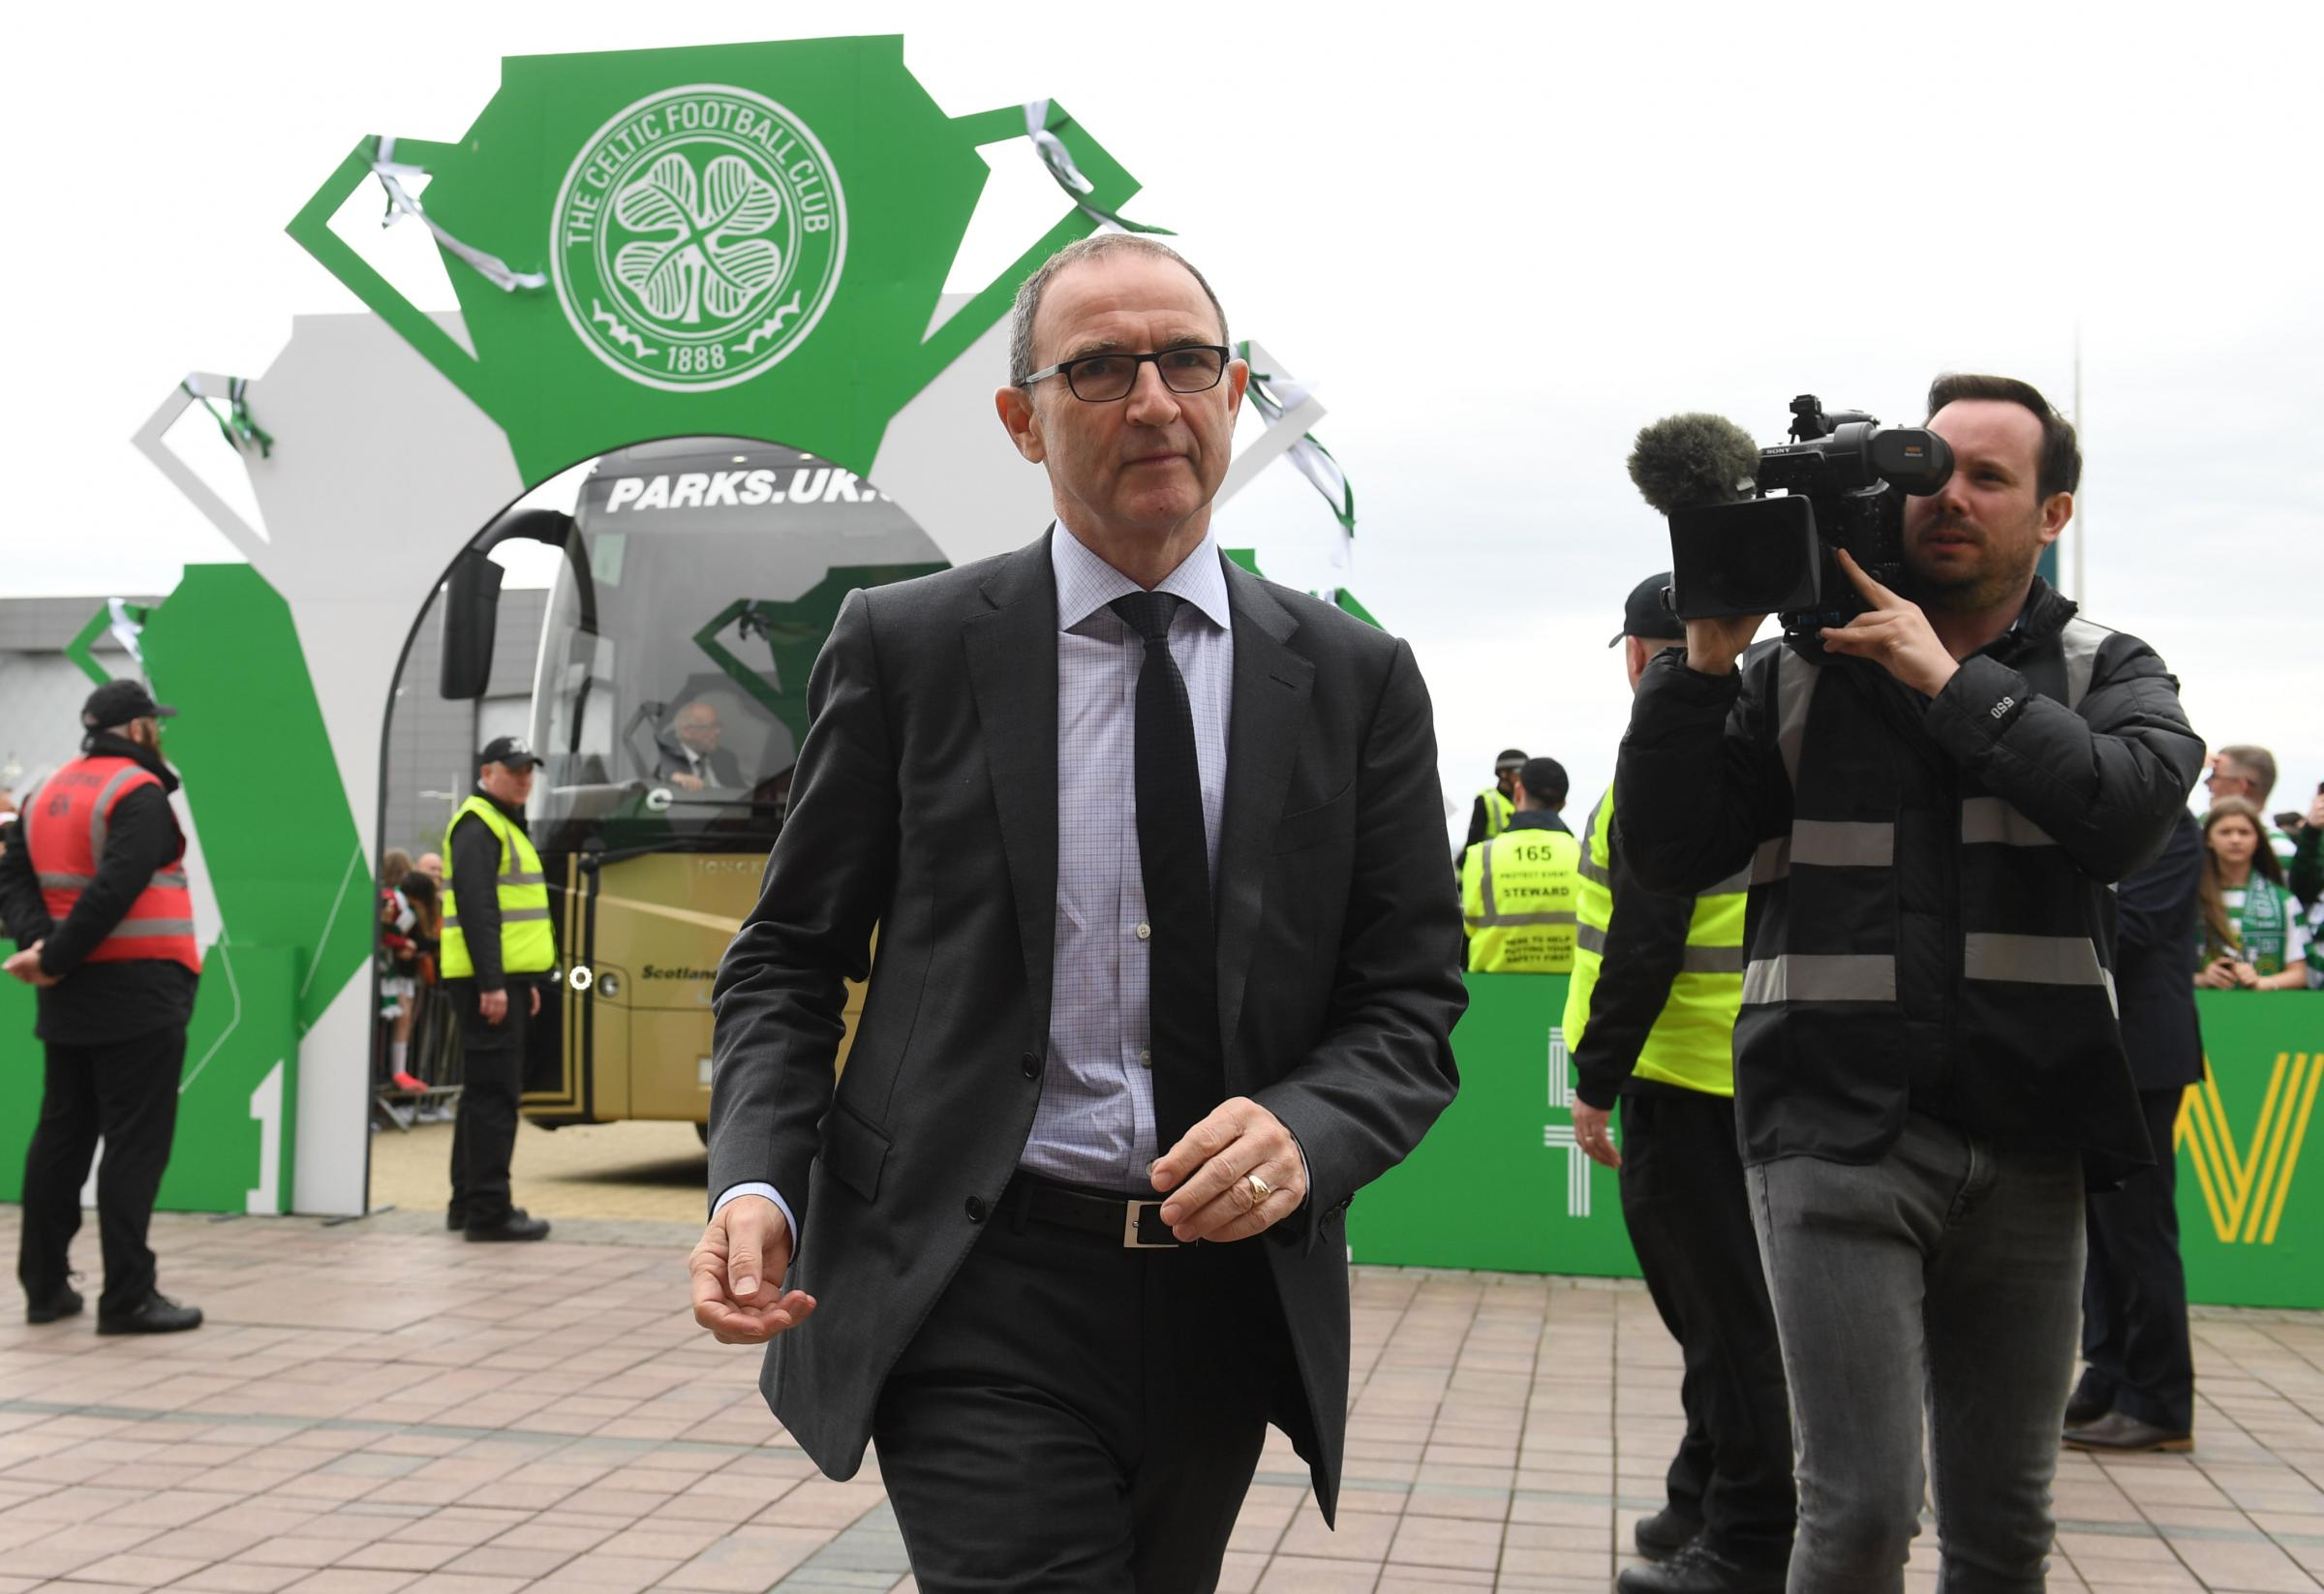 Martin O'Neill arrives at Celtic Park, leading the way for his Ireland squad (photo: SNS Group)